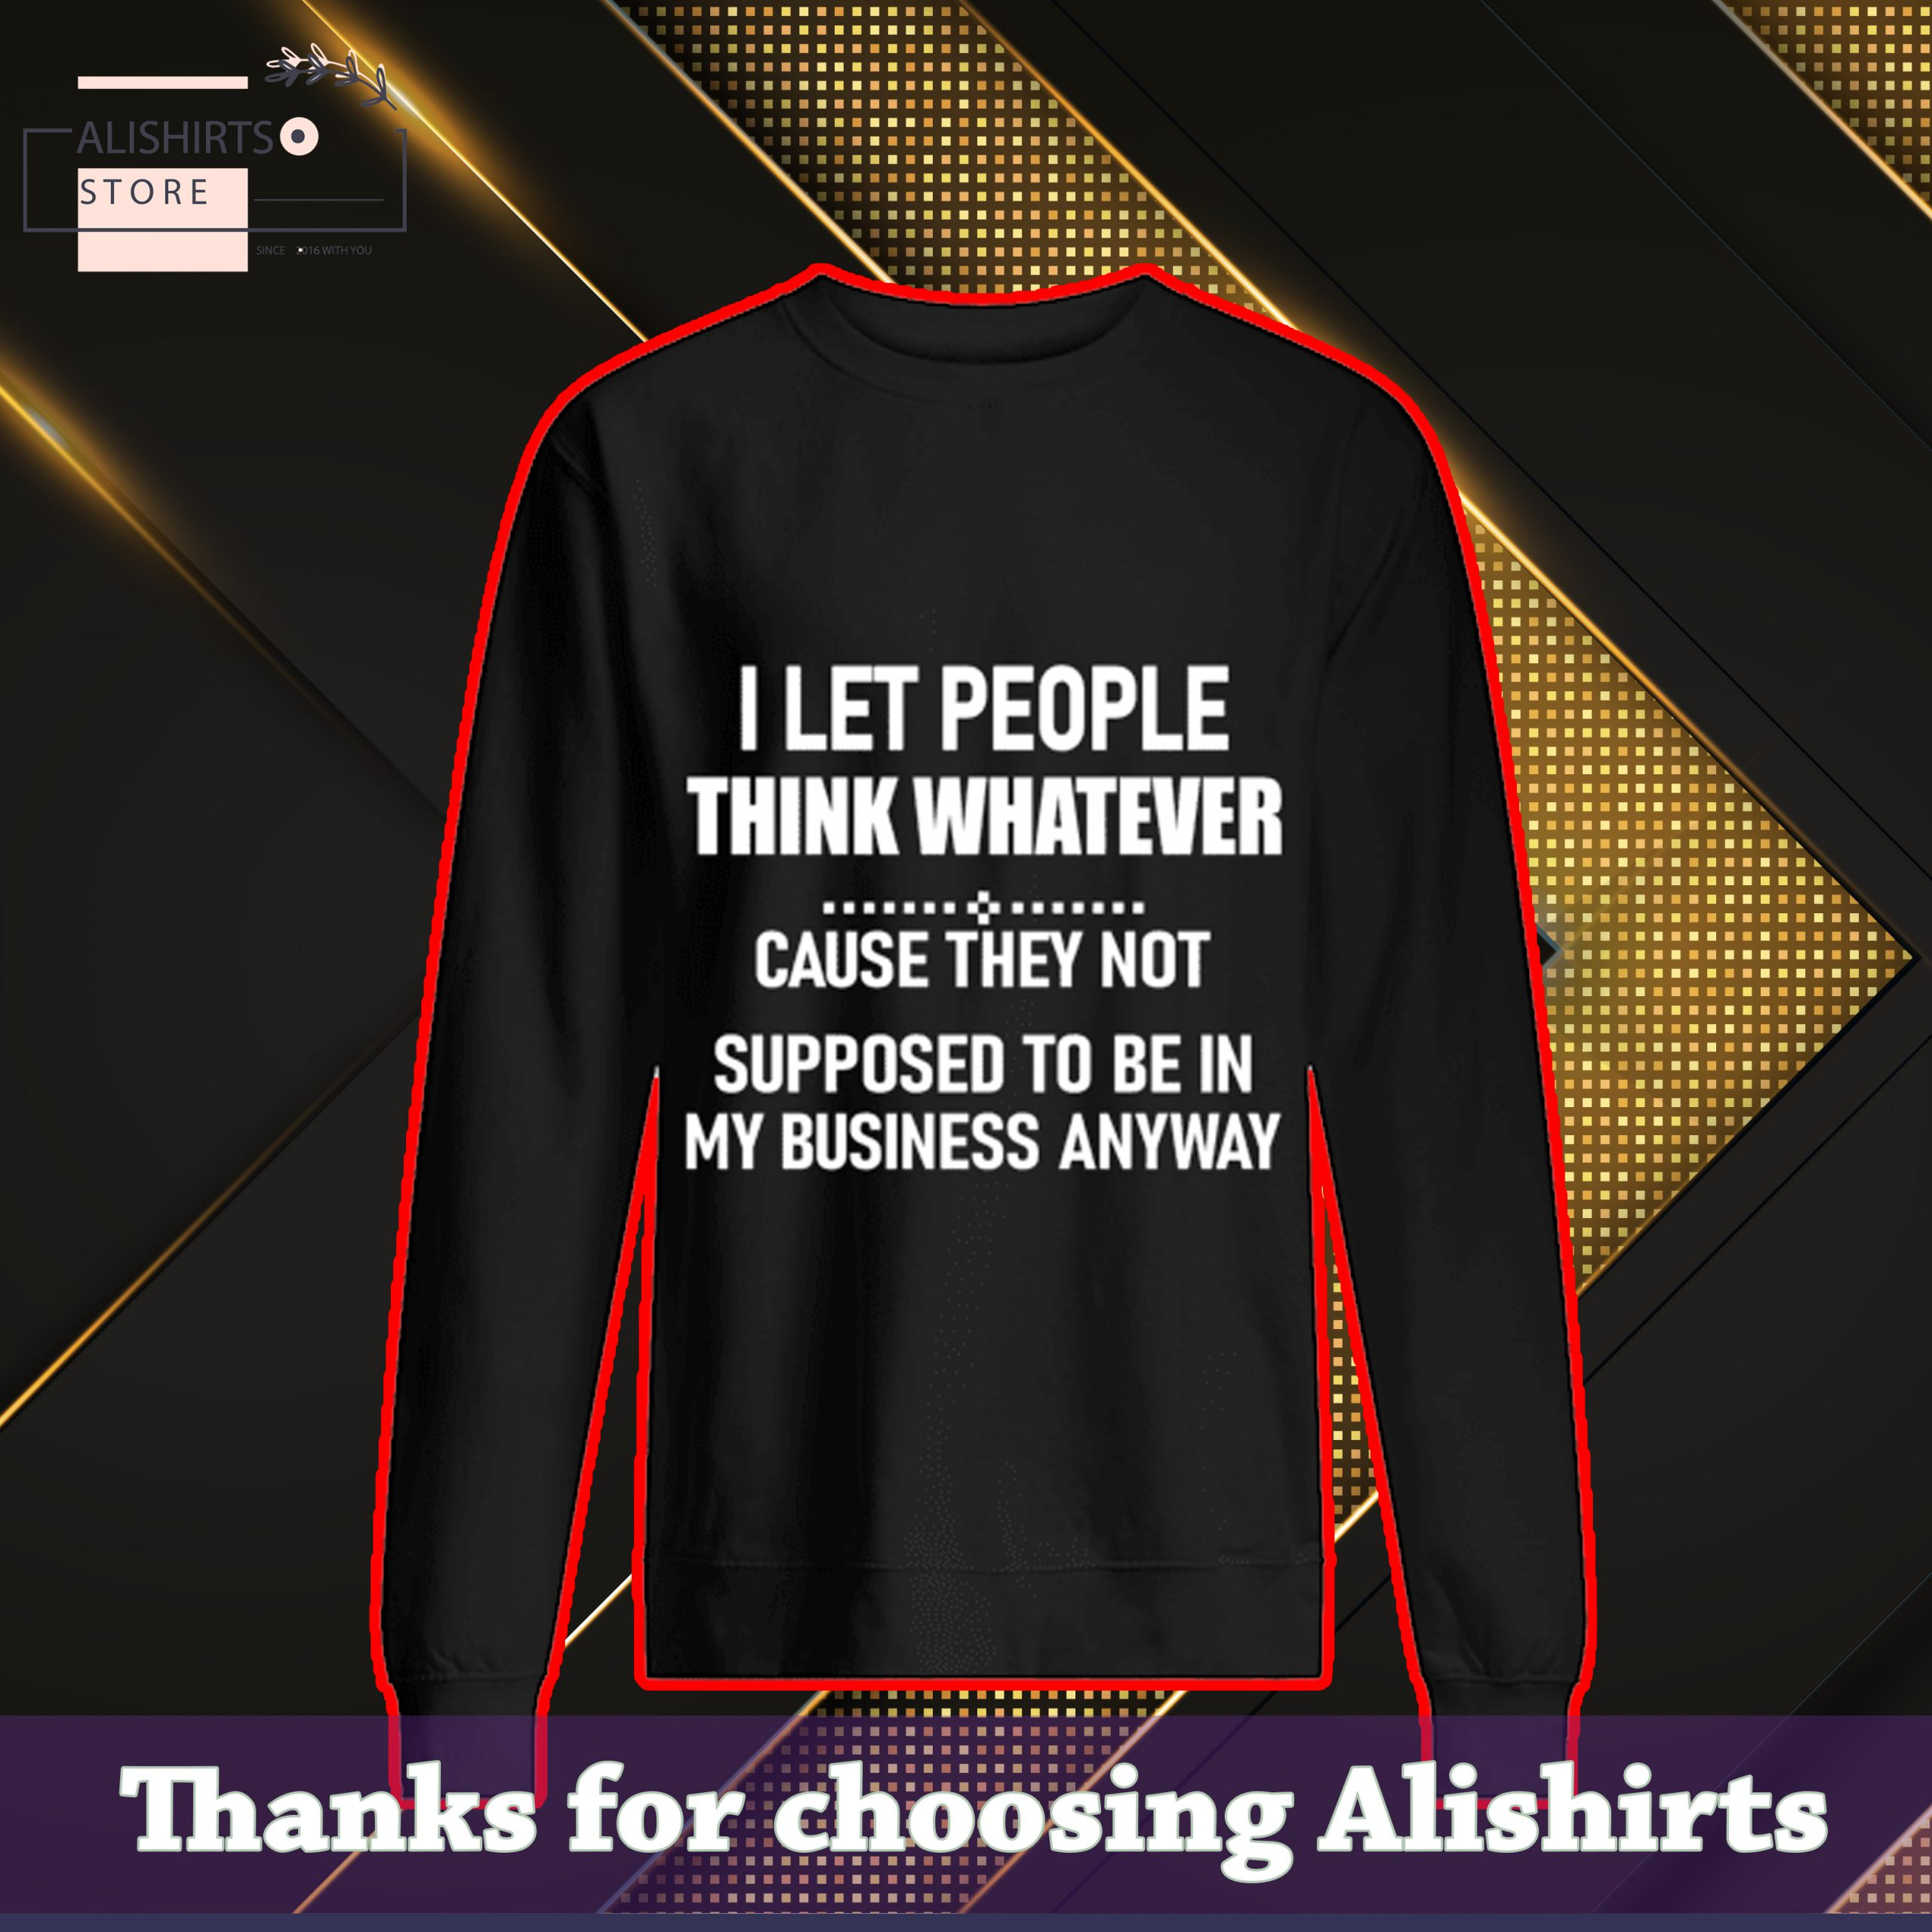 I Let People Think Whatever Cause They Not Supposed To Be In My Business Anyway SweatShirt